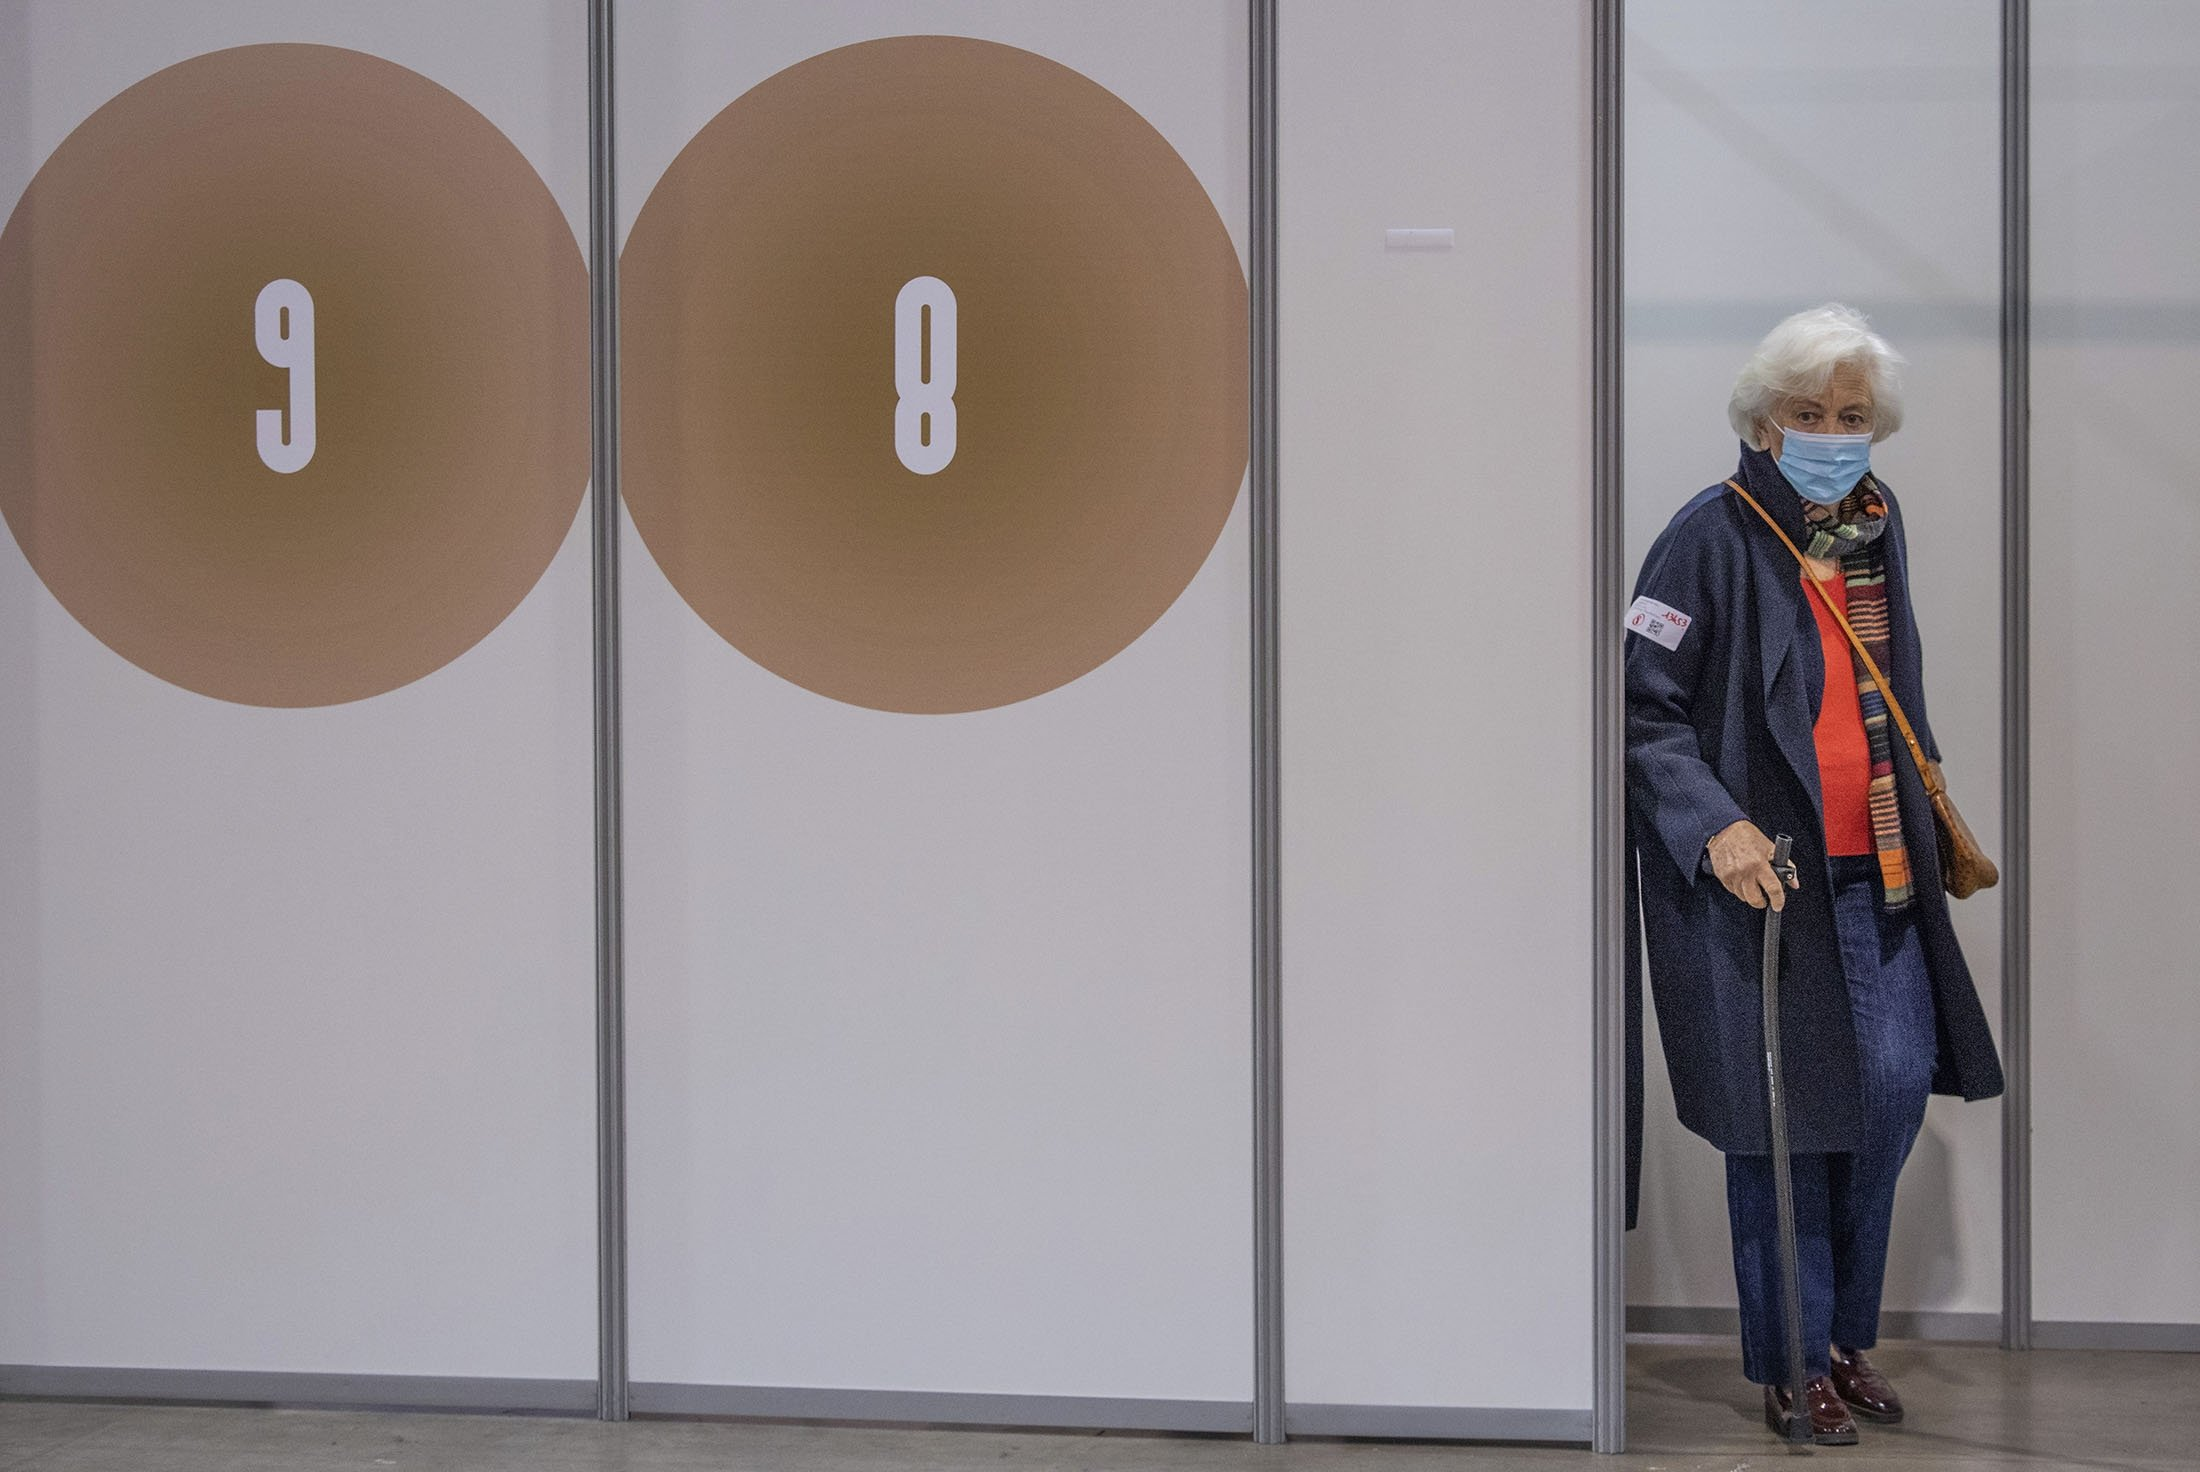 Belgium's Queen Paola leaves the vaccination cubicle after receiving her COVID-19 vaccination at the Brussels Expo vaccine center in Brussels, March 18, 2021. (AP Photo)